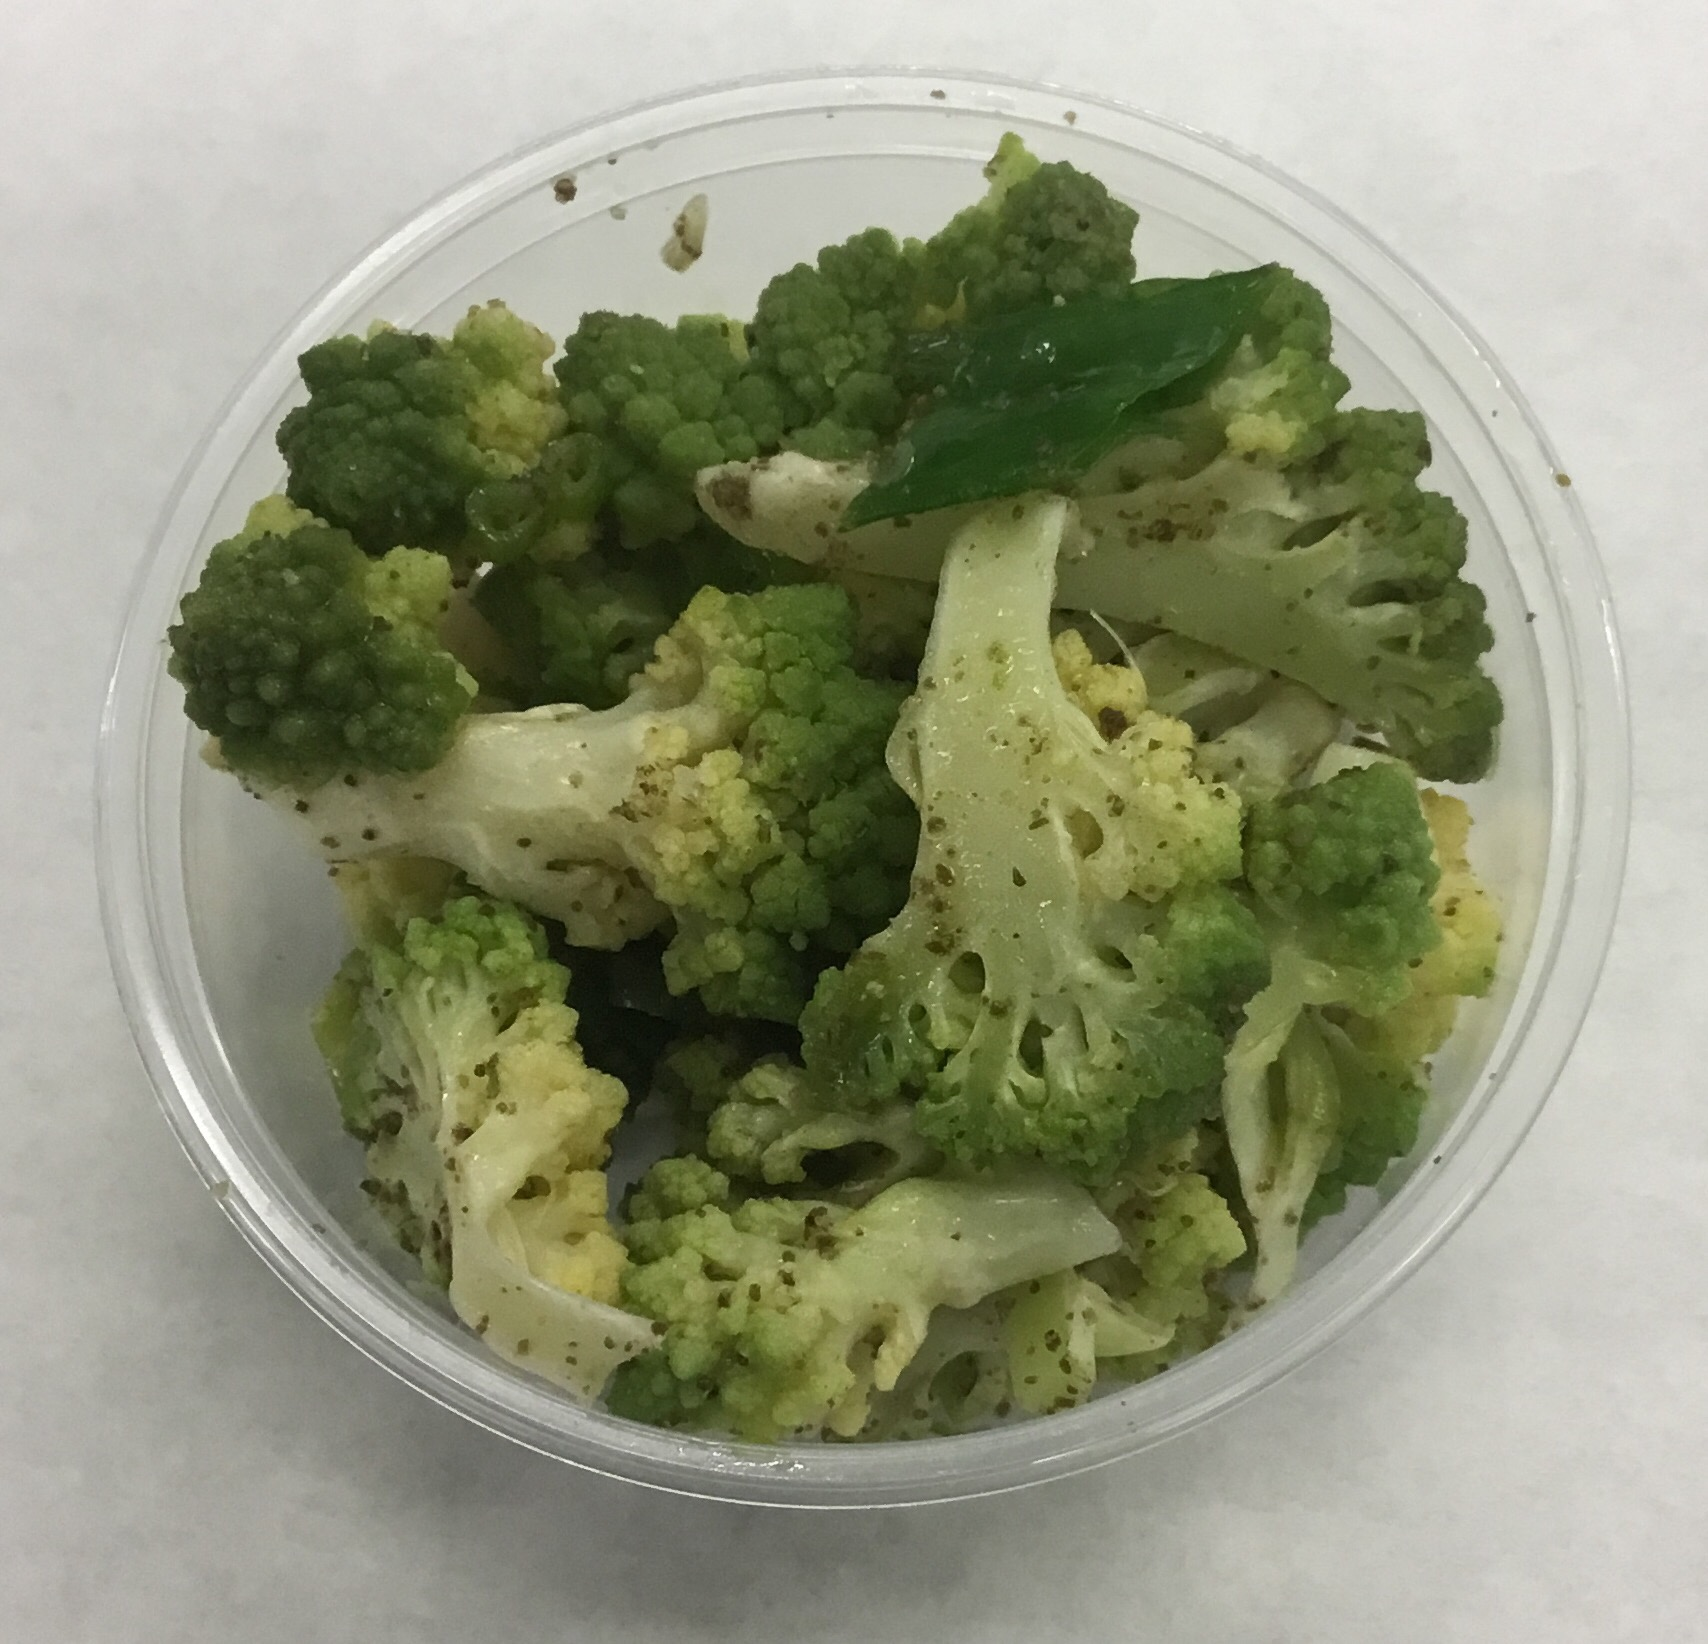 Romanesco with garlic and raw kelp (seaweed) powder.